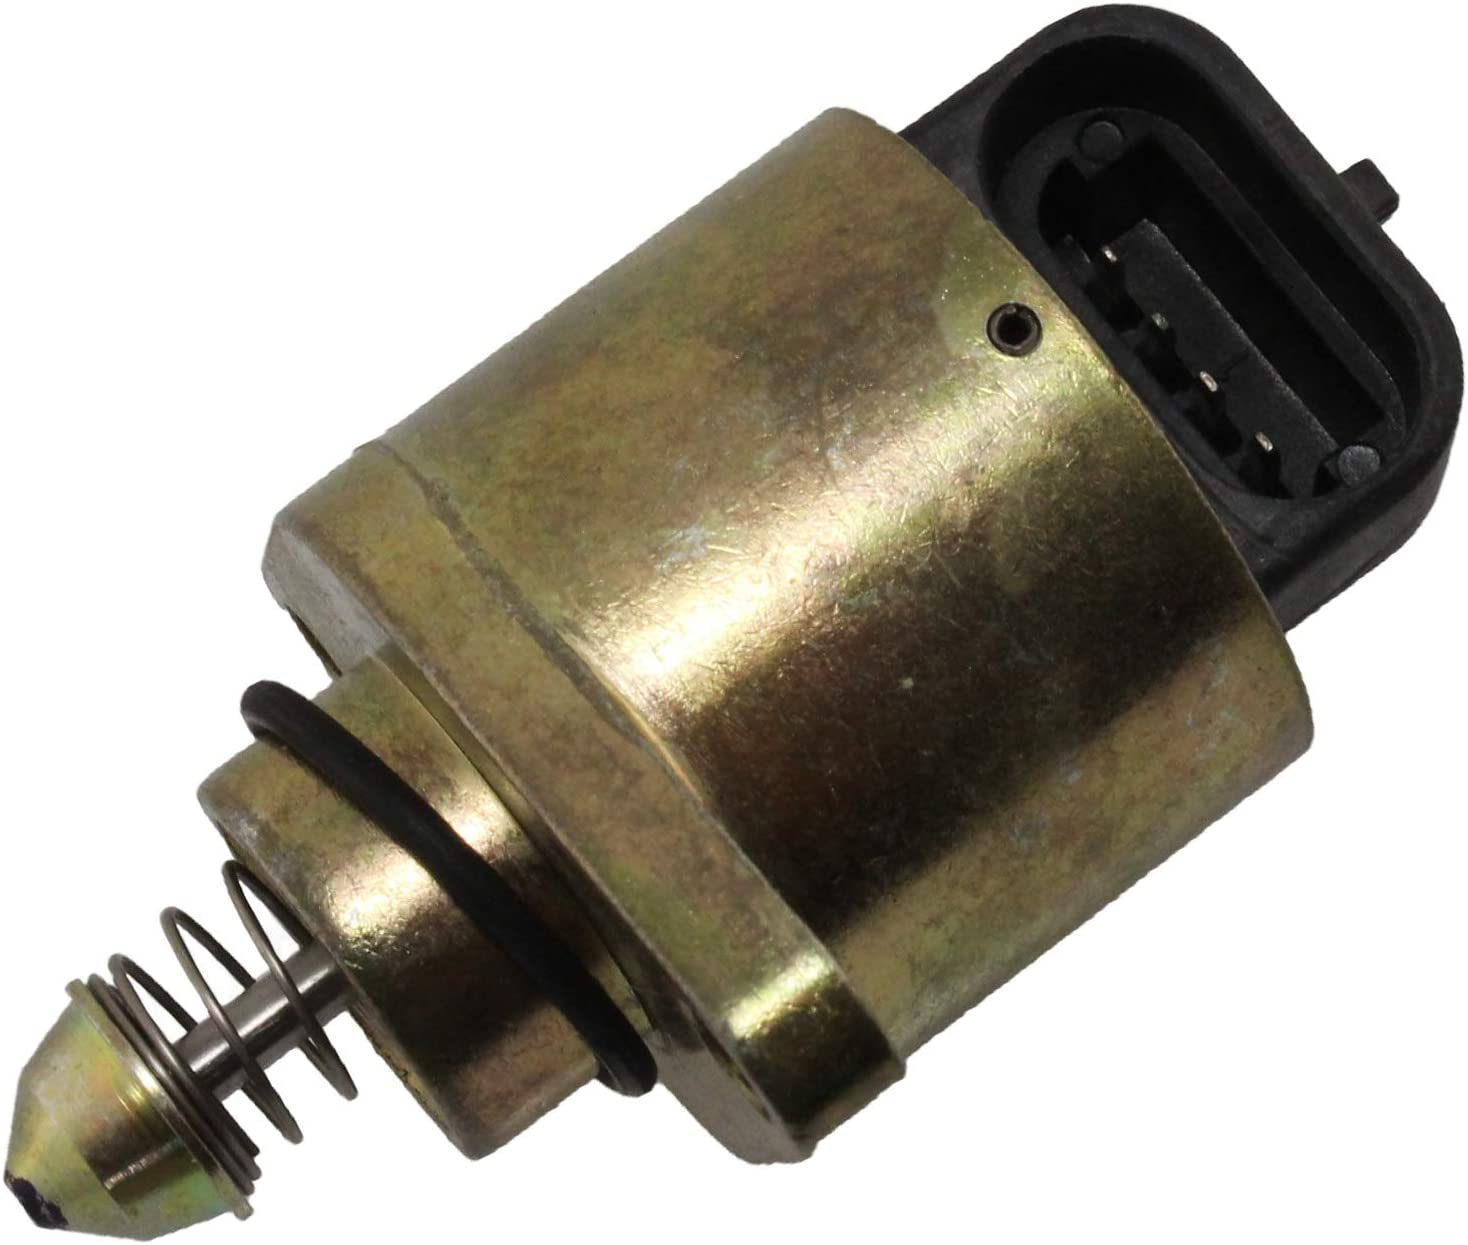 Cheap SALE Start Walker Products 215-1028 Fuel Injection Valve Control Air Idle Free shipping on posting reviews